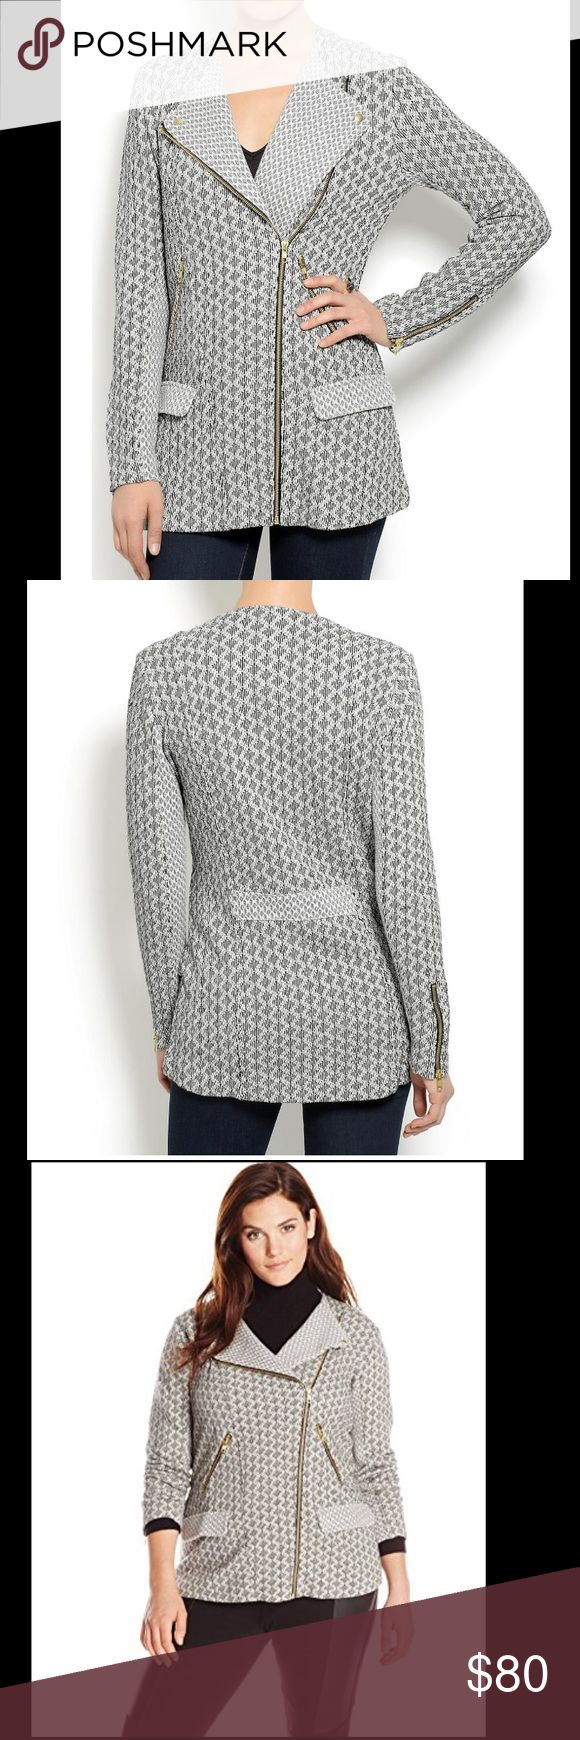 Zip Lucky Brand Marnie Long Active Jacket, XL **WORN ONLY ONCE!!!** Lengthy sleeve knit jacket with multi-coloured print. Zipper main points, with aspect wallet.  Complete zip Lucky Brand Women's Marnie Long Active Jacket, Black/White, XL 100% cotton Lucky Brand Jackets & Coats